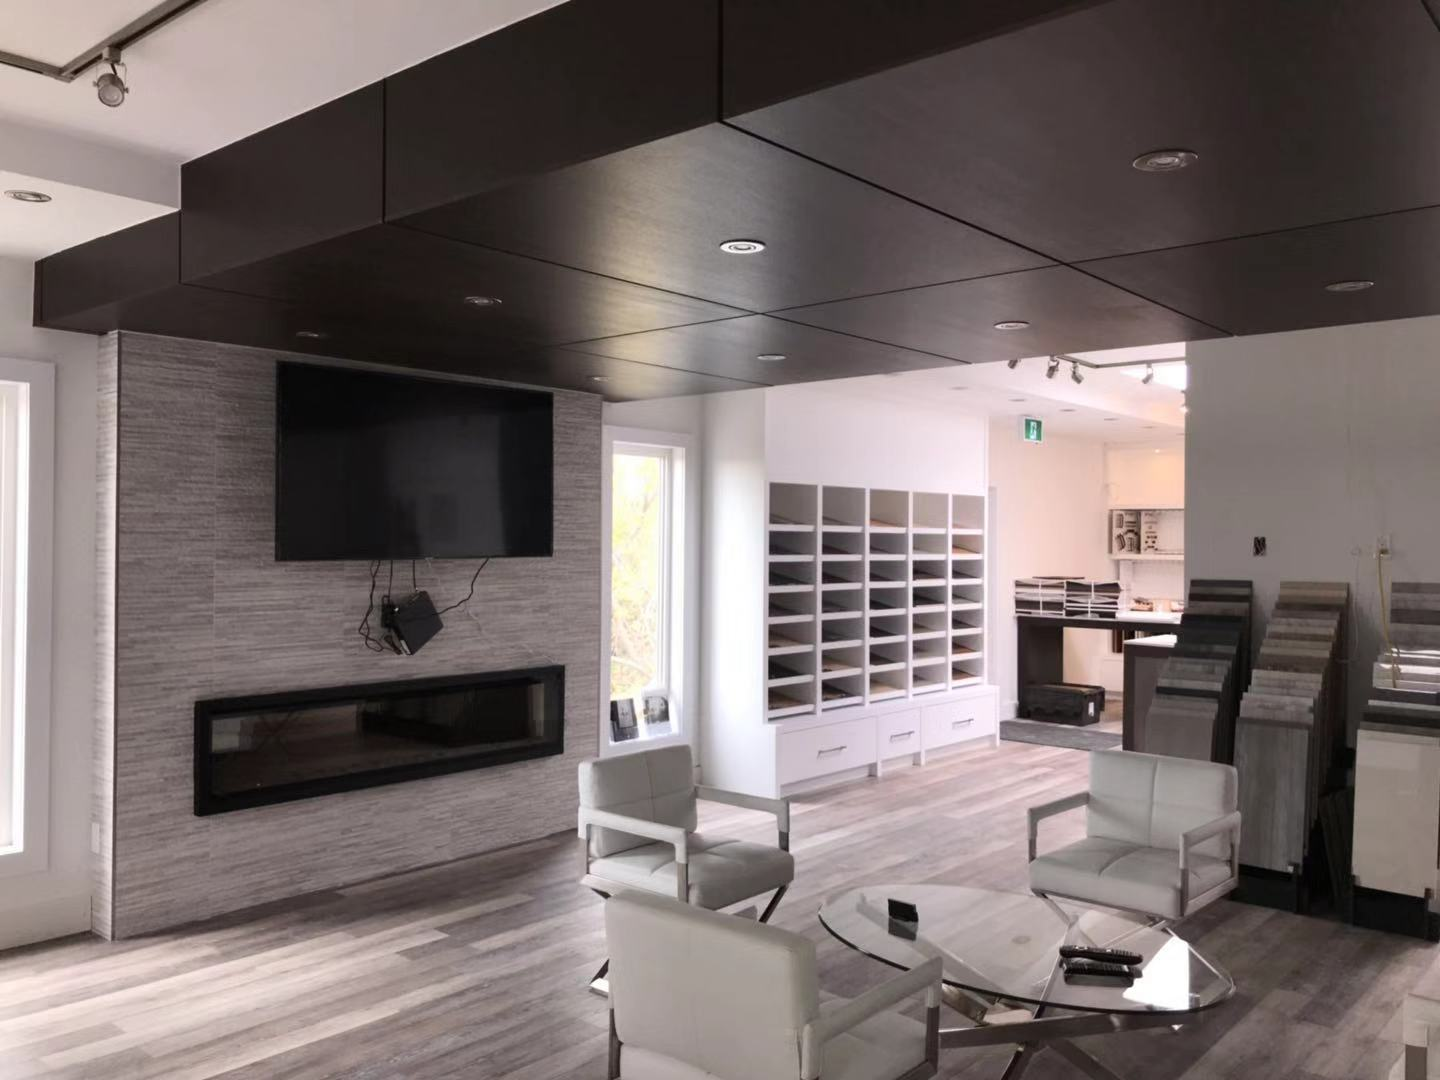 Wall Display Cabinetry